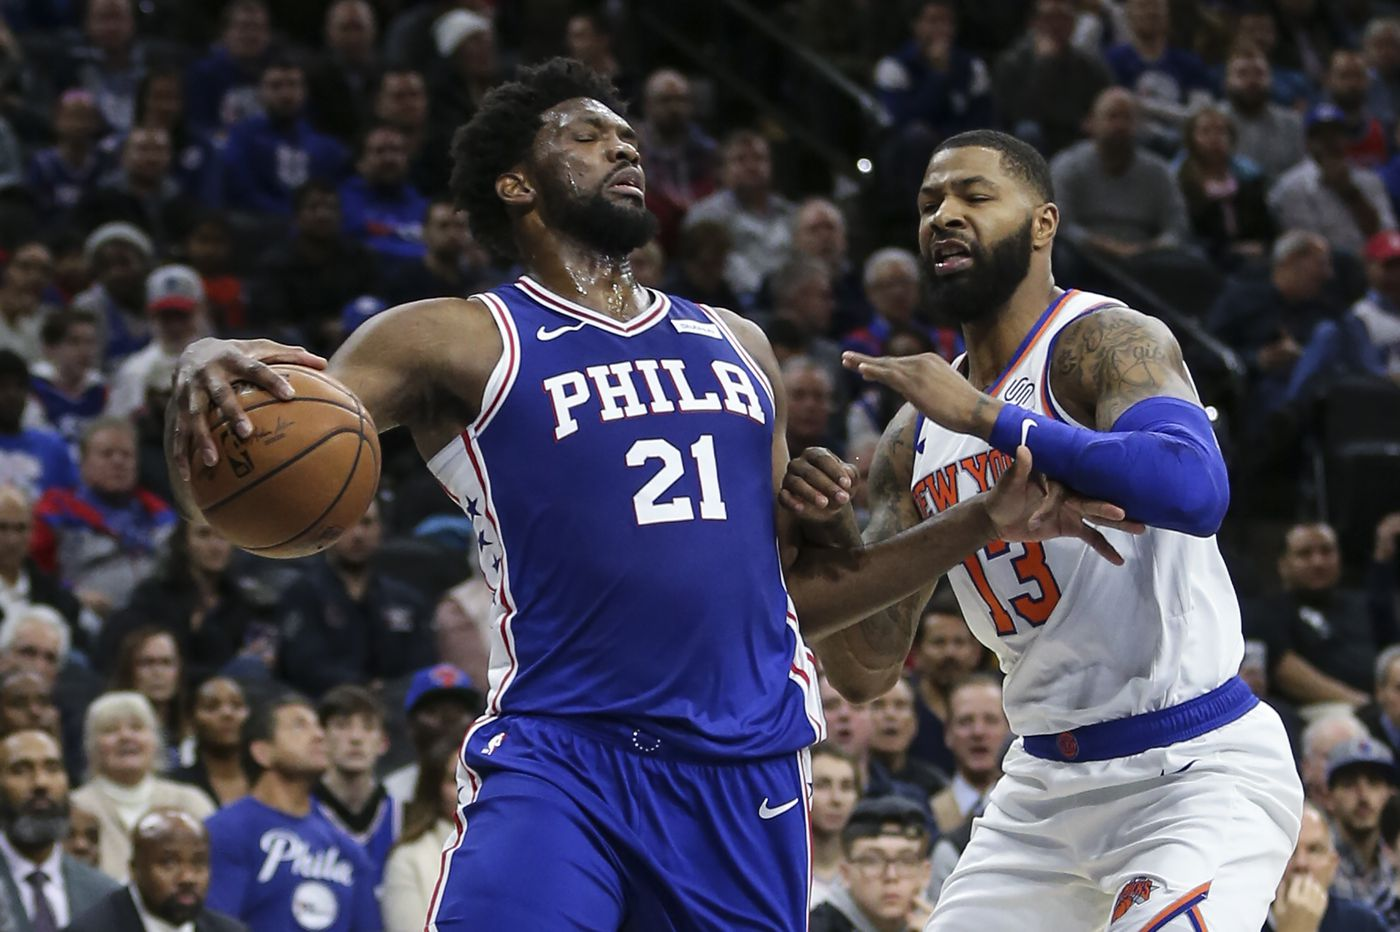 Sixers overcome 17-point deficit to beat the Knicks